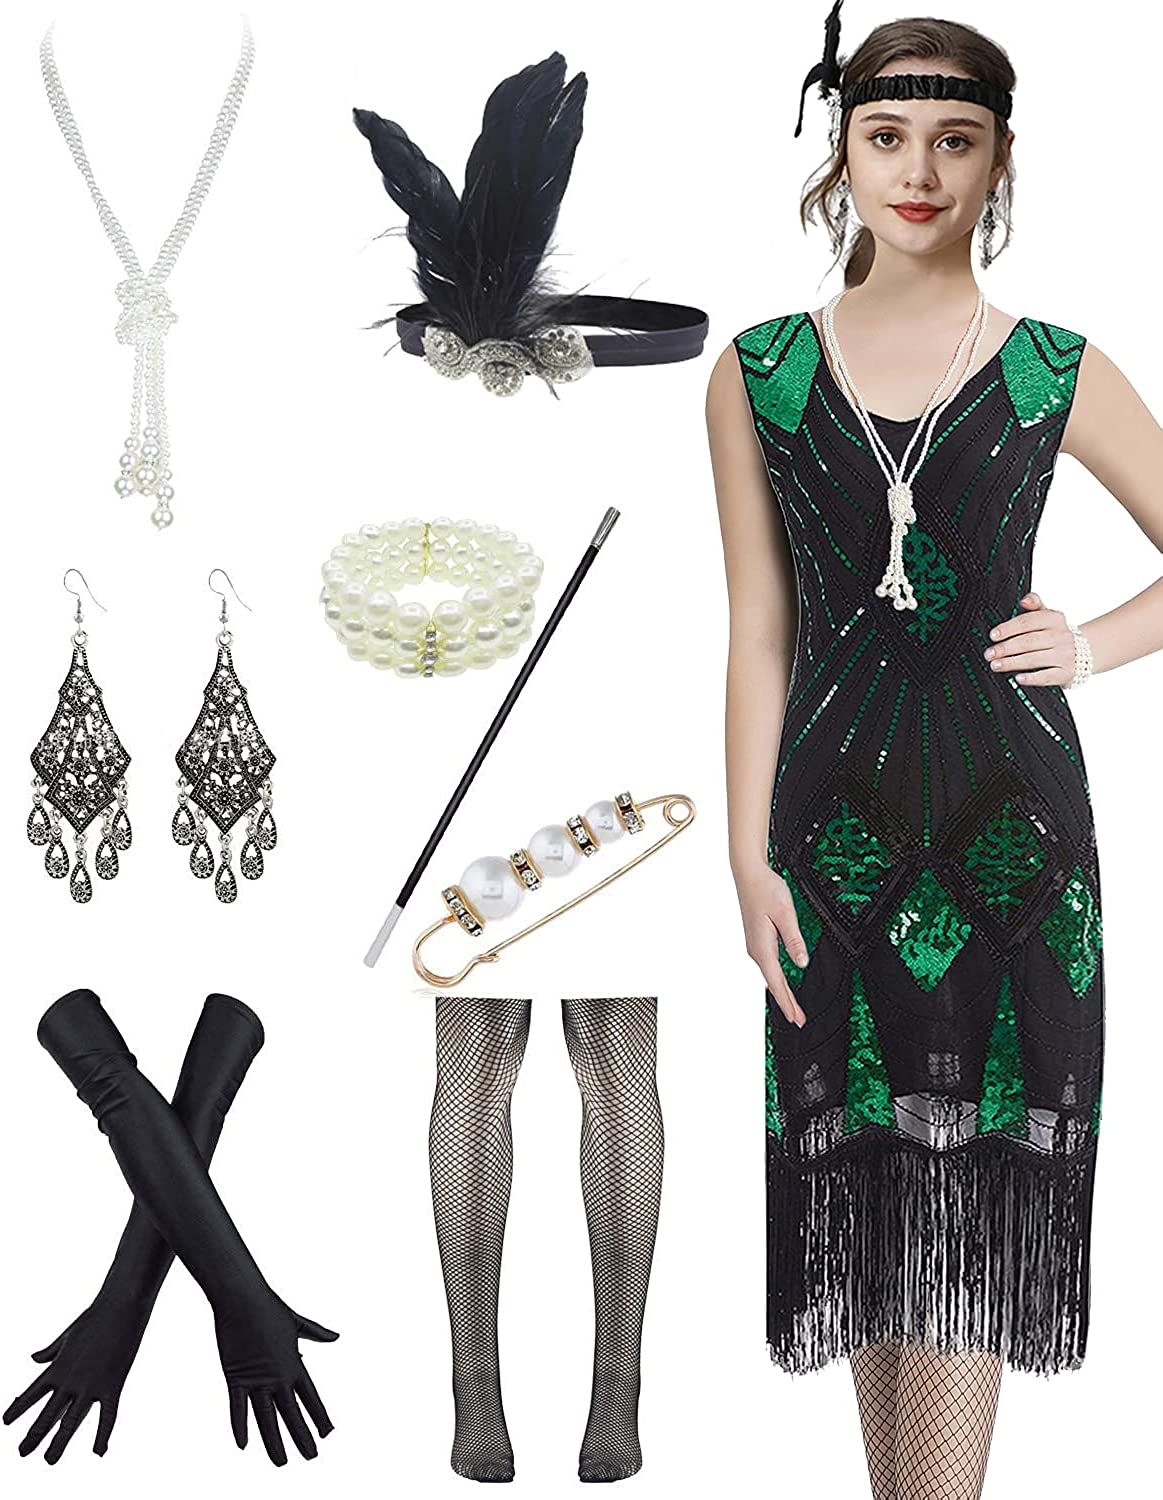 Flapper Dress Floral Embroidery Sequin Fringed Cocktail 1920s Dress w/Accessories (S, Green)